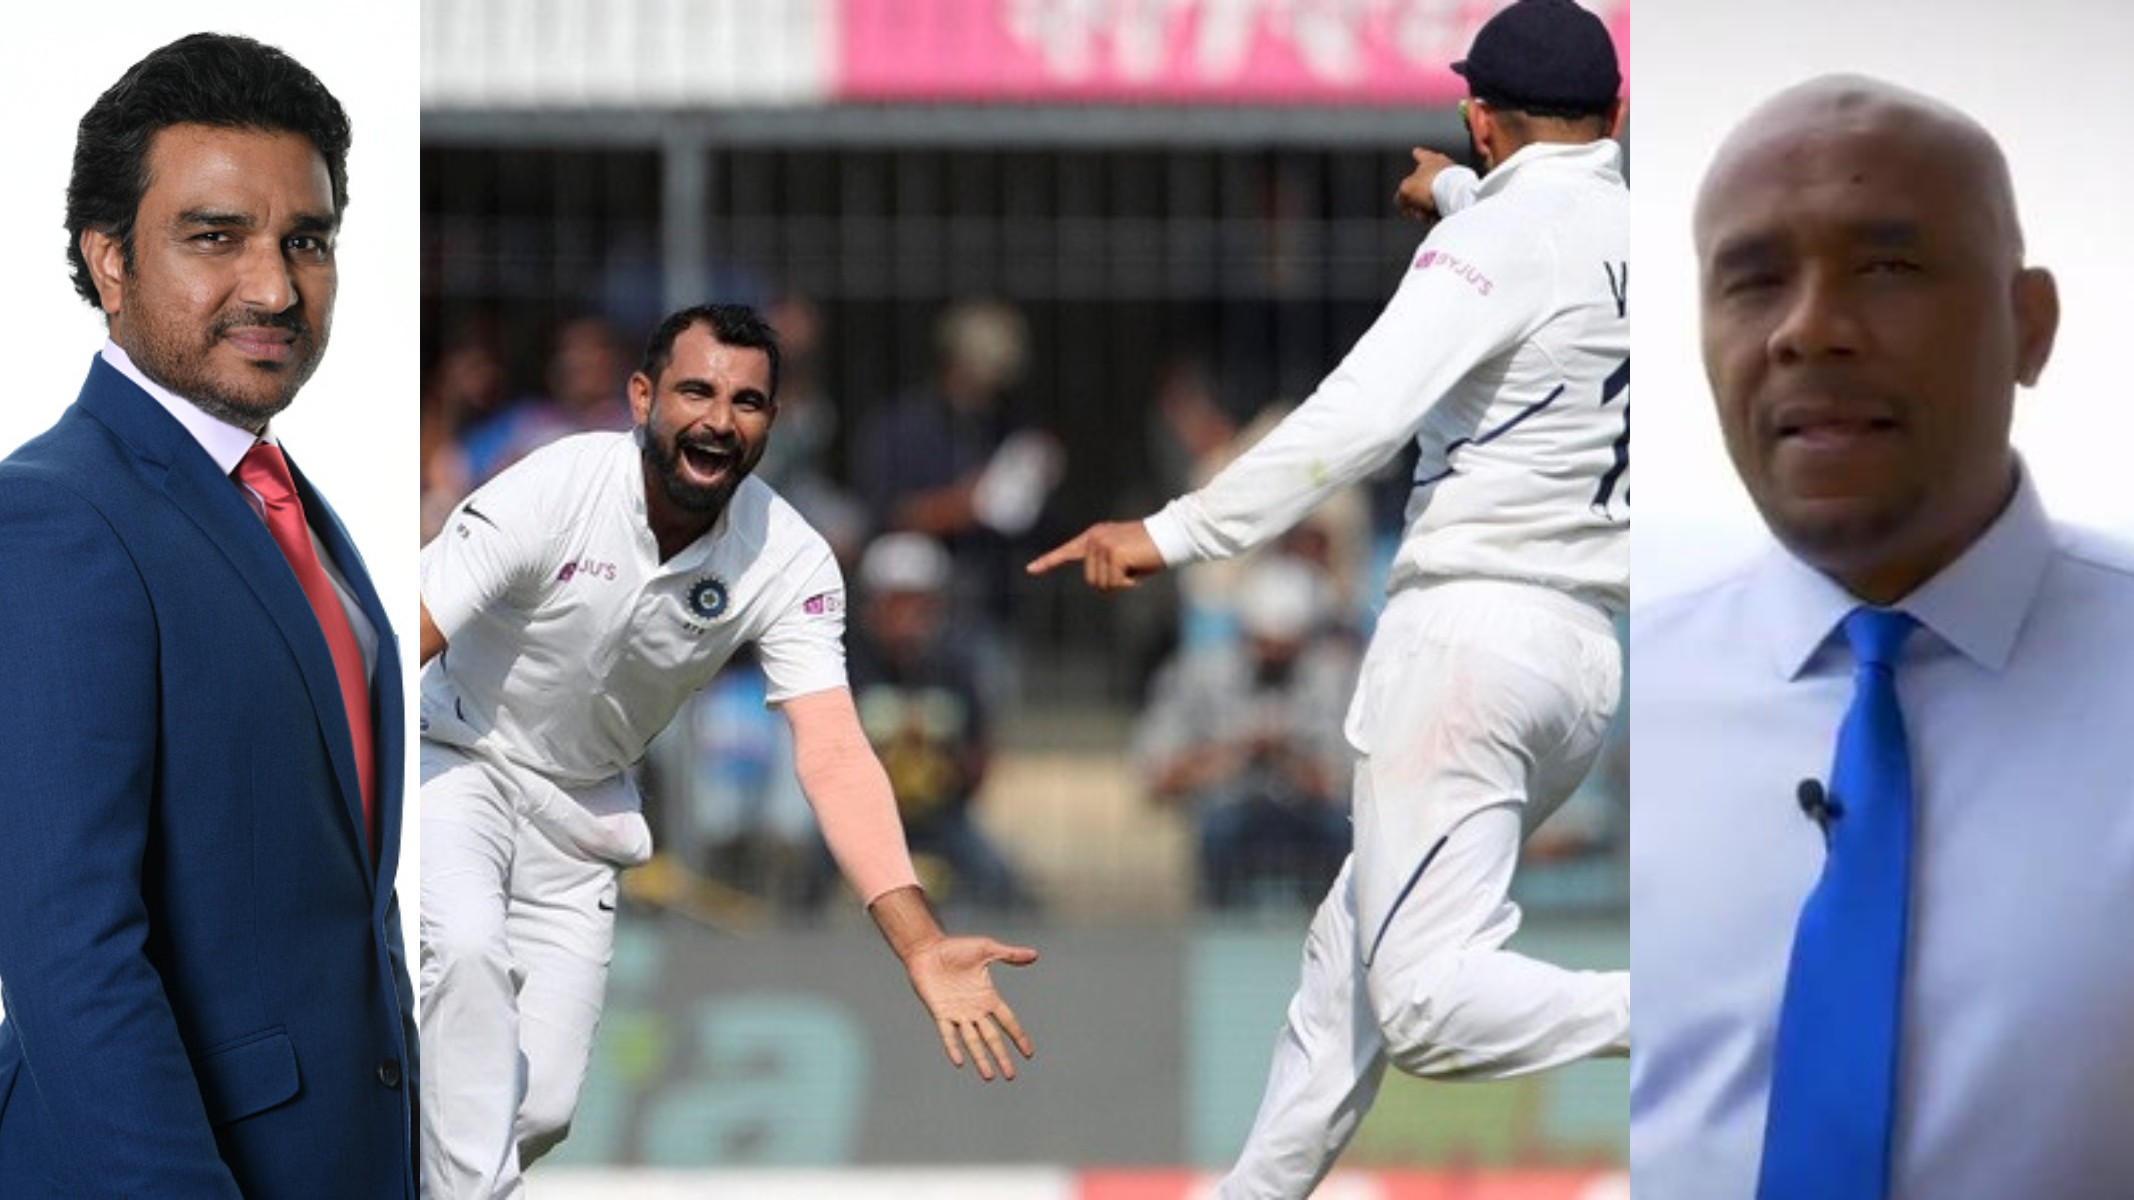 IND v BAN 2019: 1st Test- Cricket fraternity lauds Indian bowlers as they clean up Bangladesh for 150